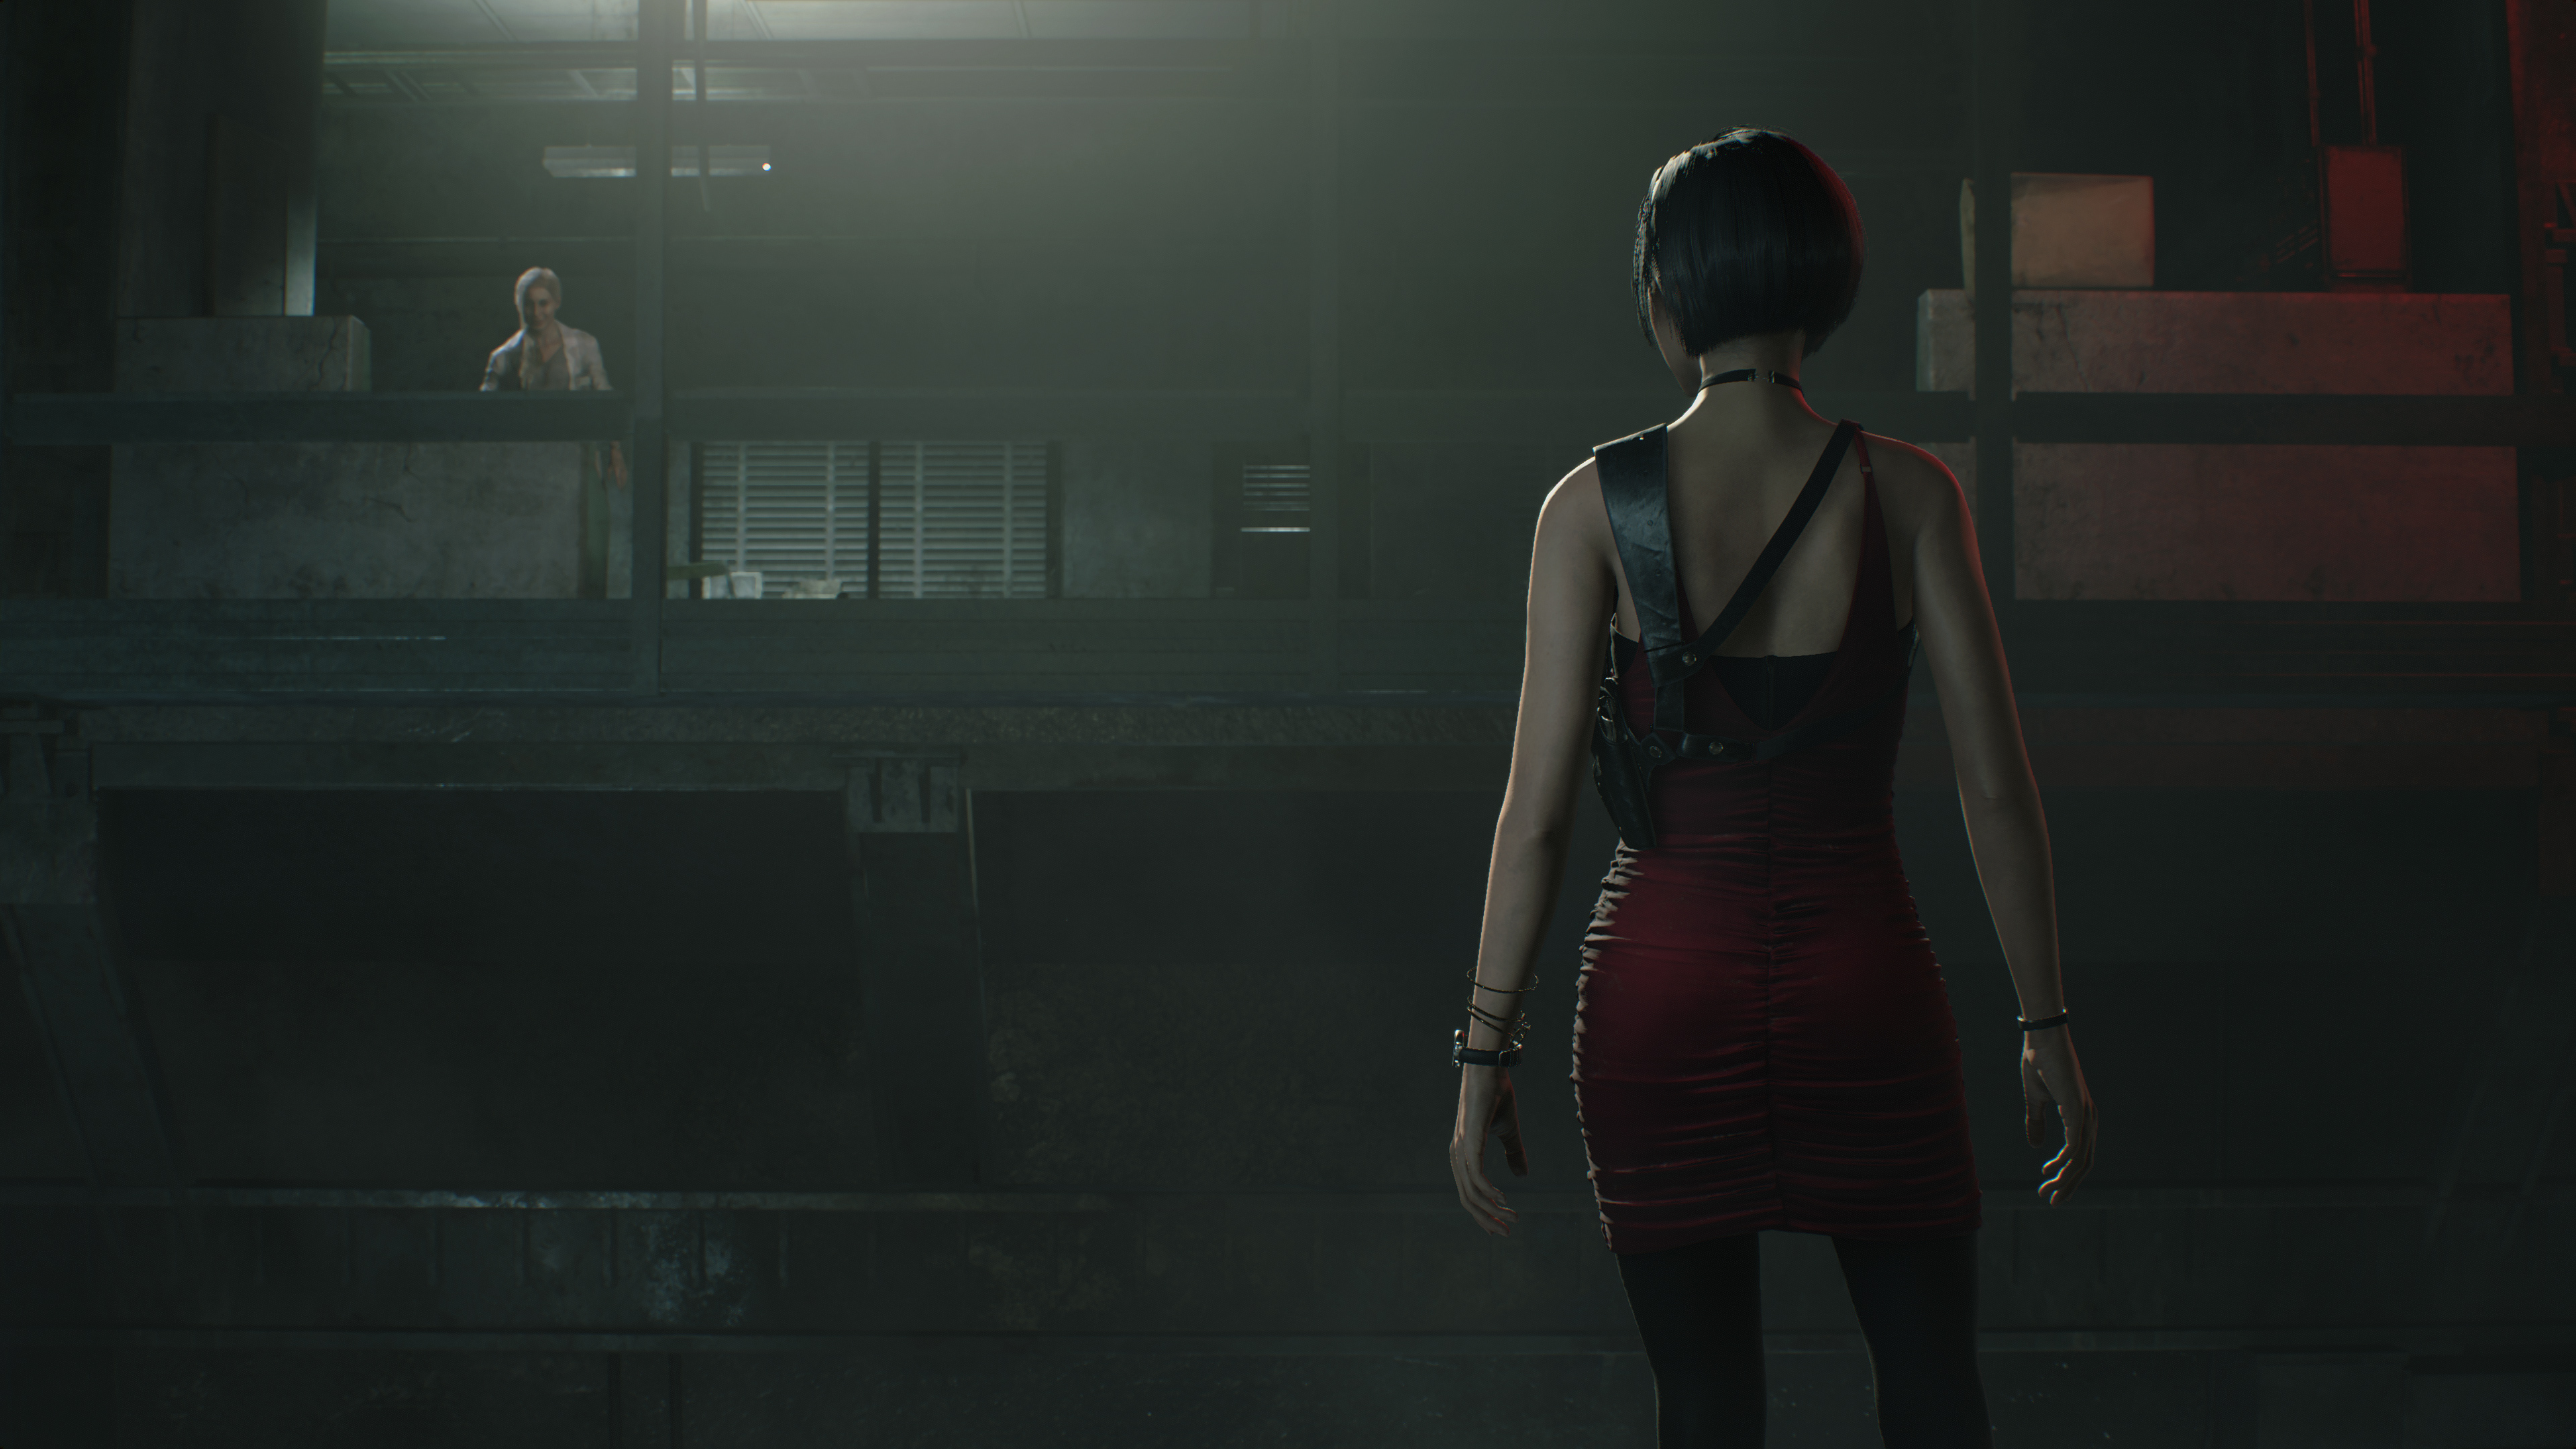 960x540 4k Claire Redfield Resident Evil 2 960x540